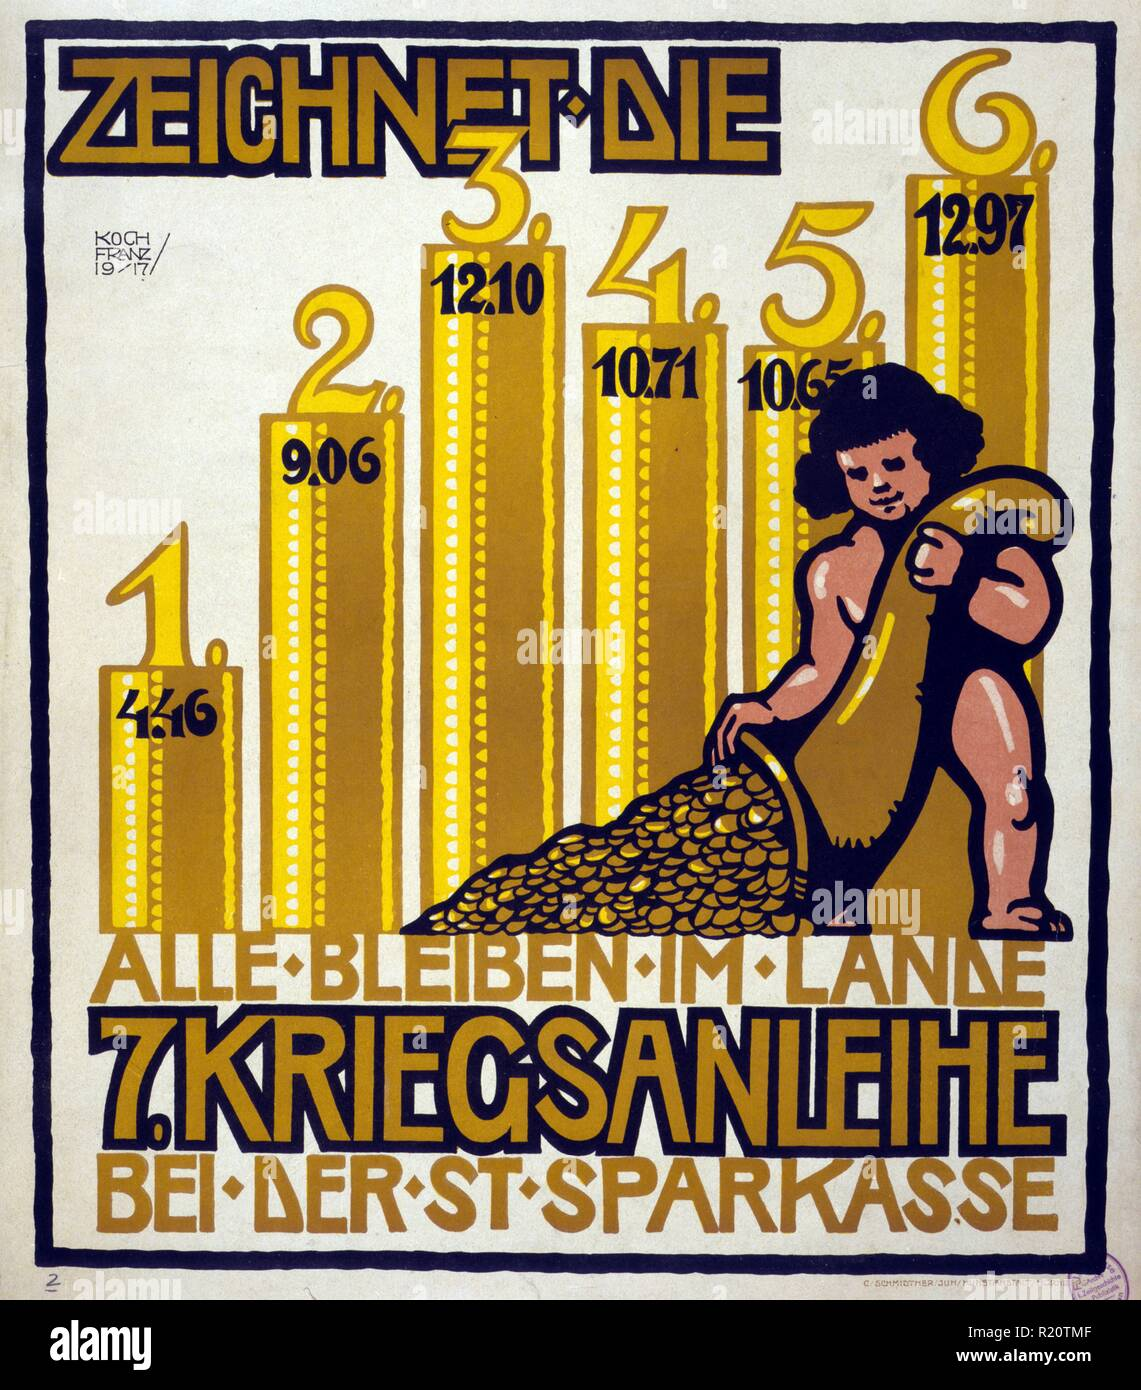 Poster shows a cherub pouring coins from a bag;in the background a graph shows amounts collected at the various war loan drives. Text: Subscribe to the 7th War Loan at the local bank, all funds stay in the country. - Stock Image